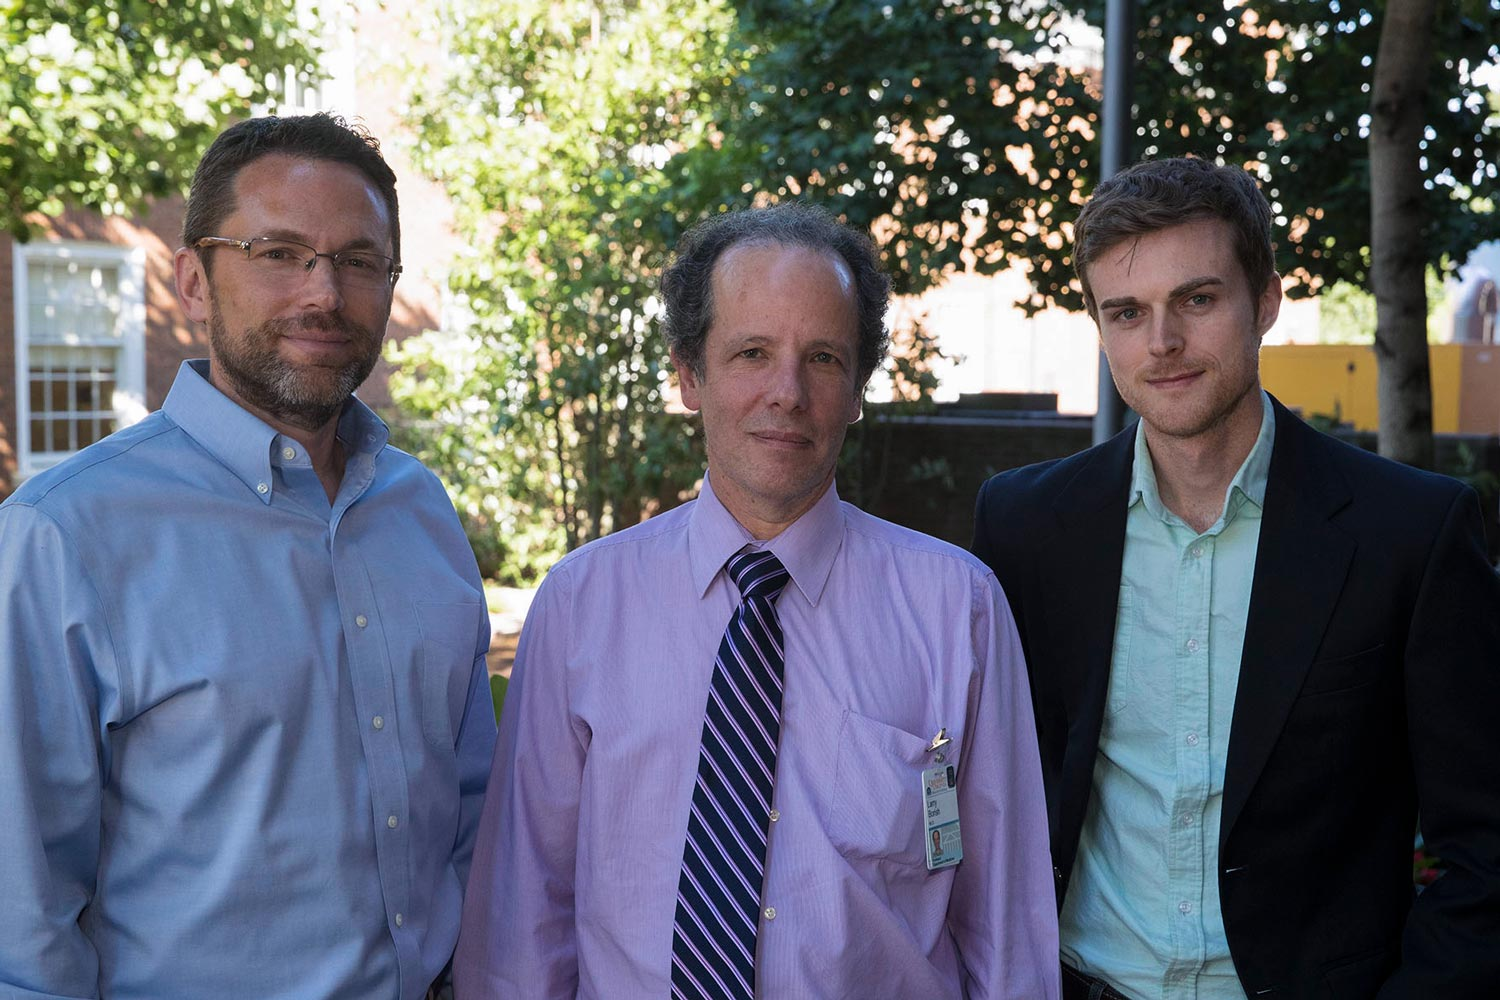 UVA engineering professors John Lach, left, and Daniel Quinn, right, are collaborating with Dr. Larry Borish, center, on the new technology.